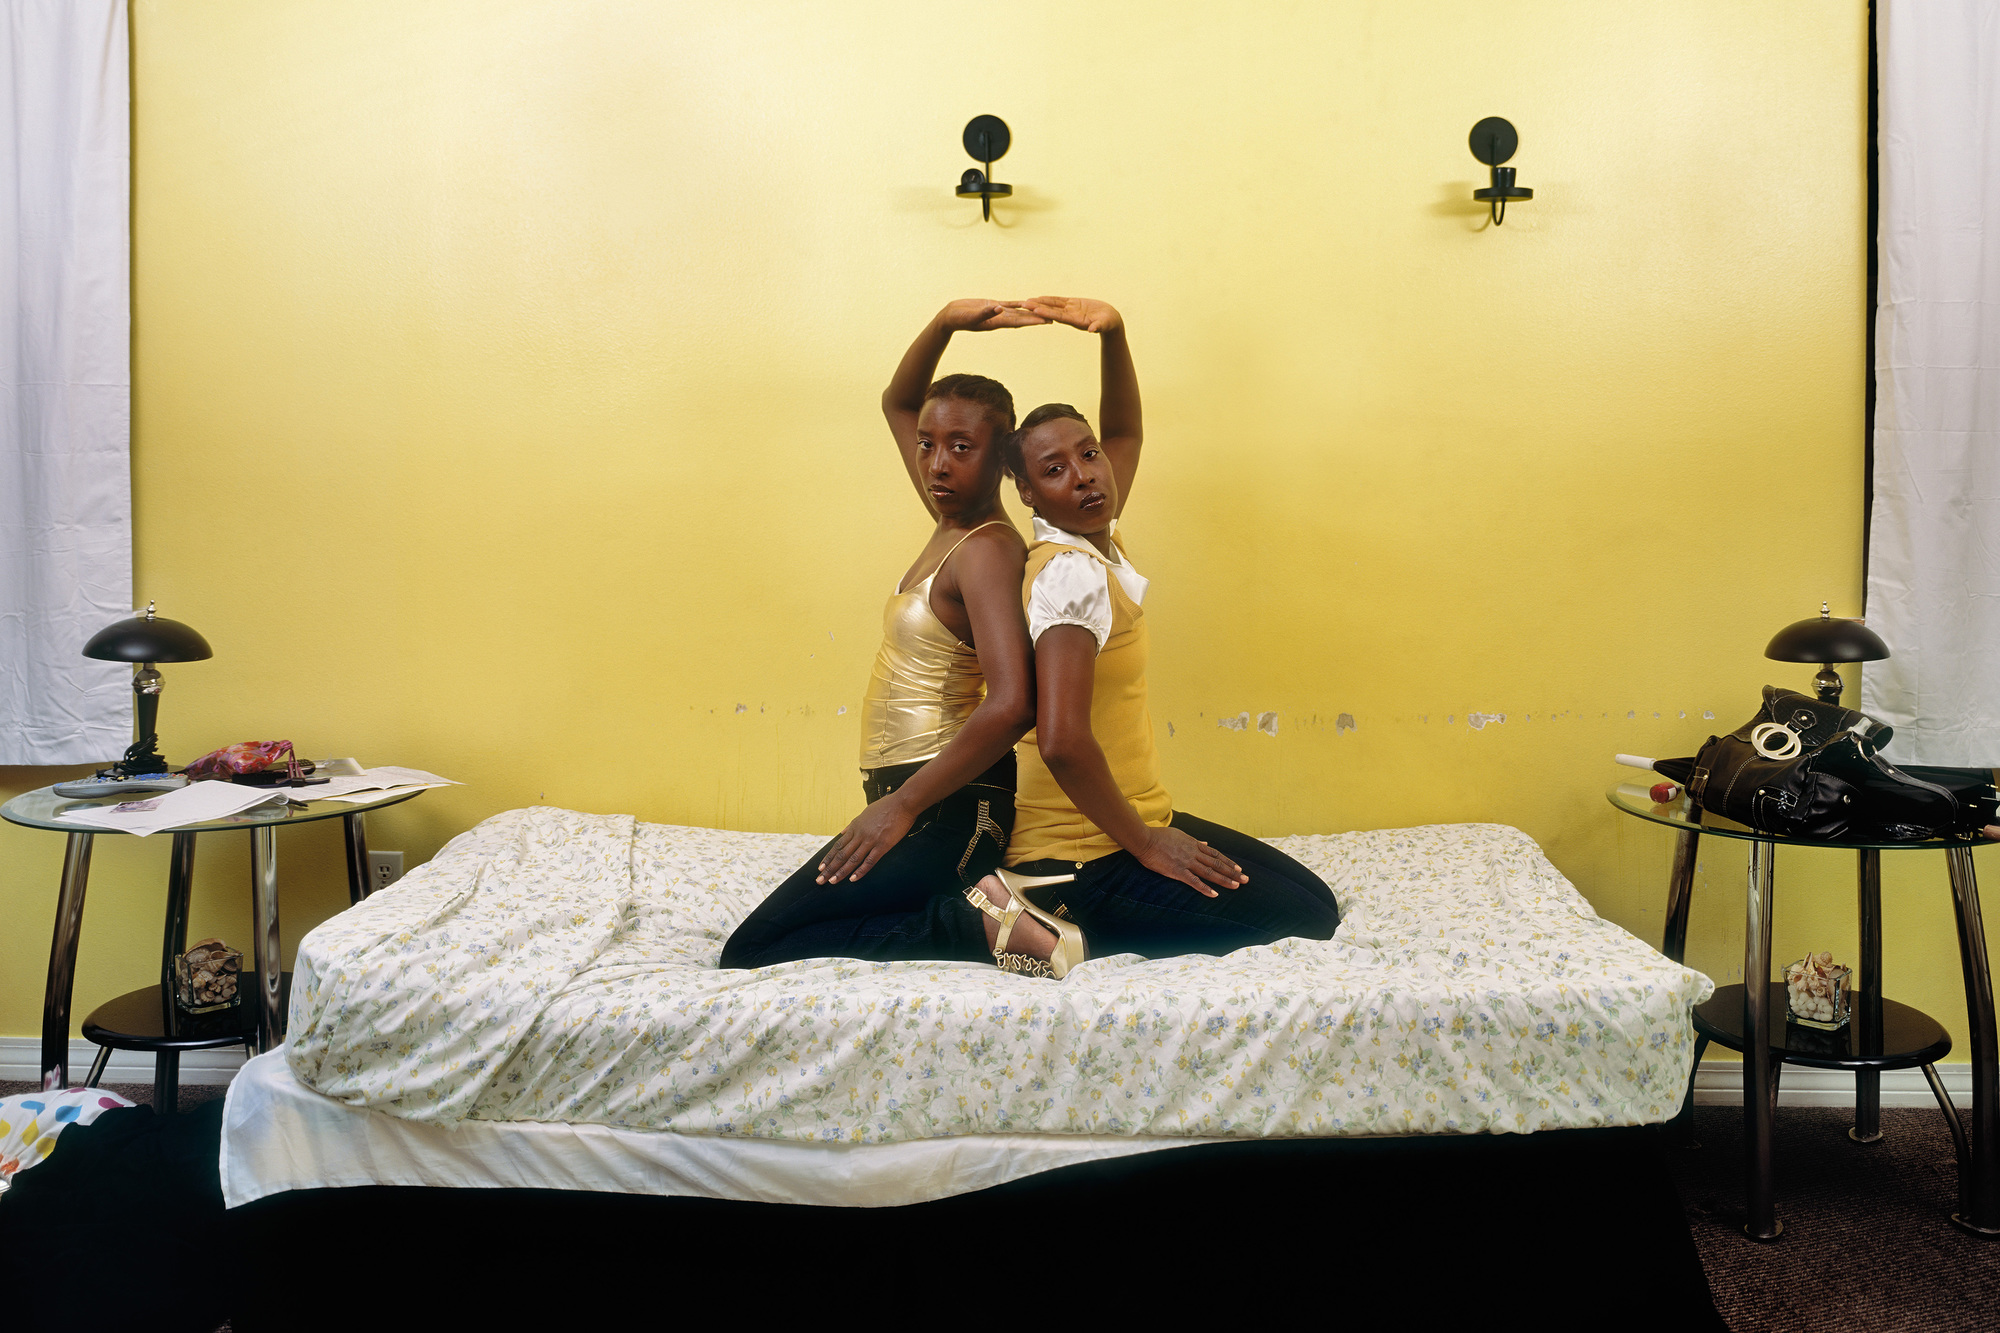 Deana Lawson (American, b. 1979). Roxie and Raquel. 2010. Pigmented inkjet print, 34 3/4 × 43 5/8ʺ (88.3 × 110.8 cm). Fund for the Twenty-First Century. © 2016 Deana Lawson